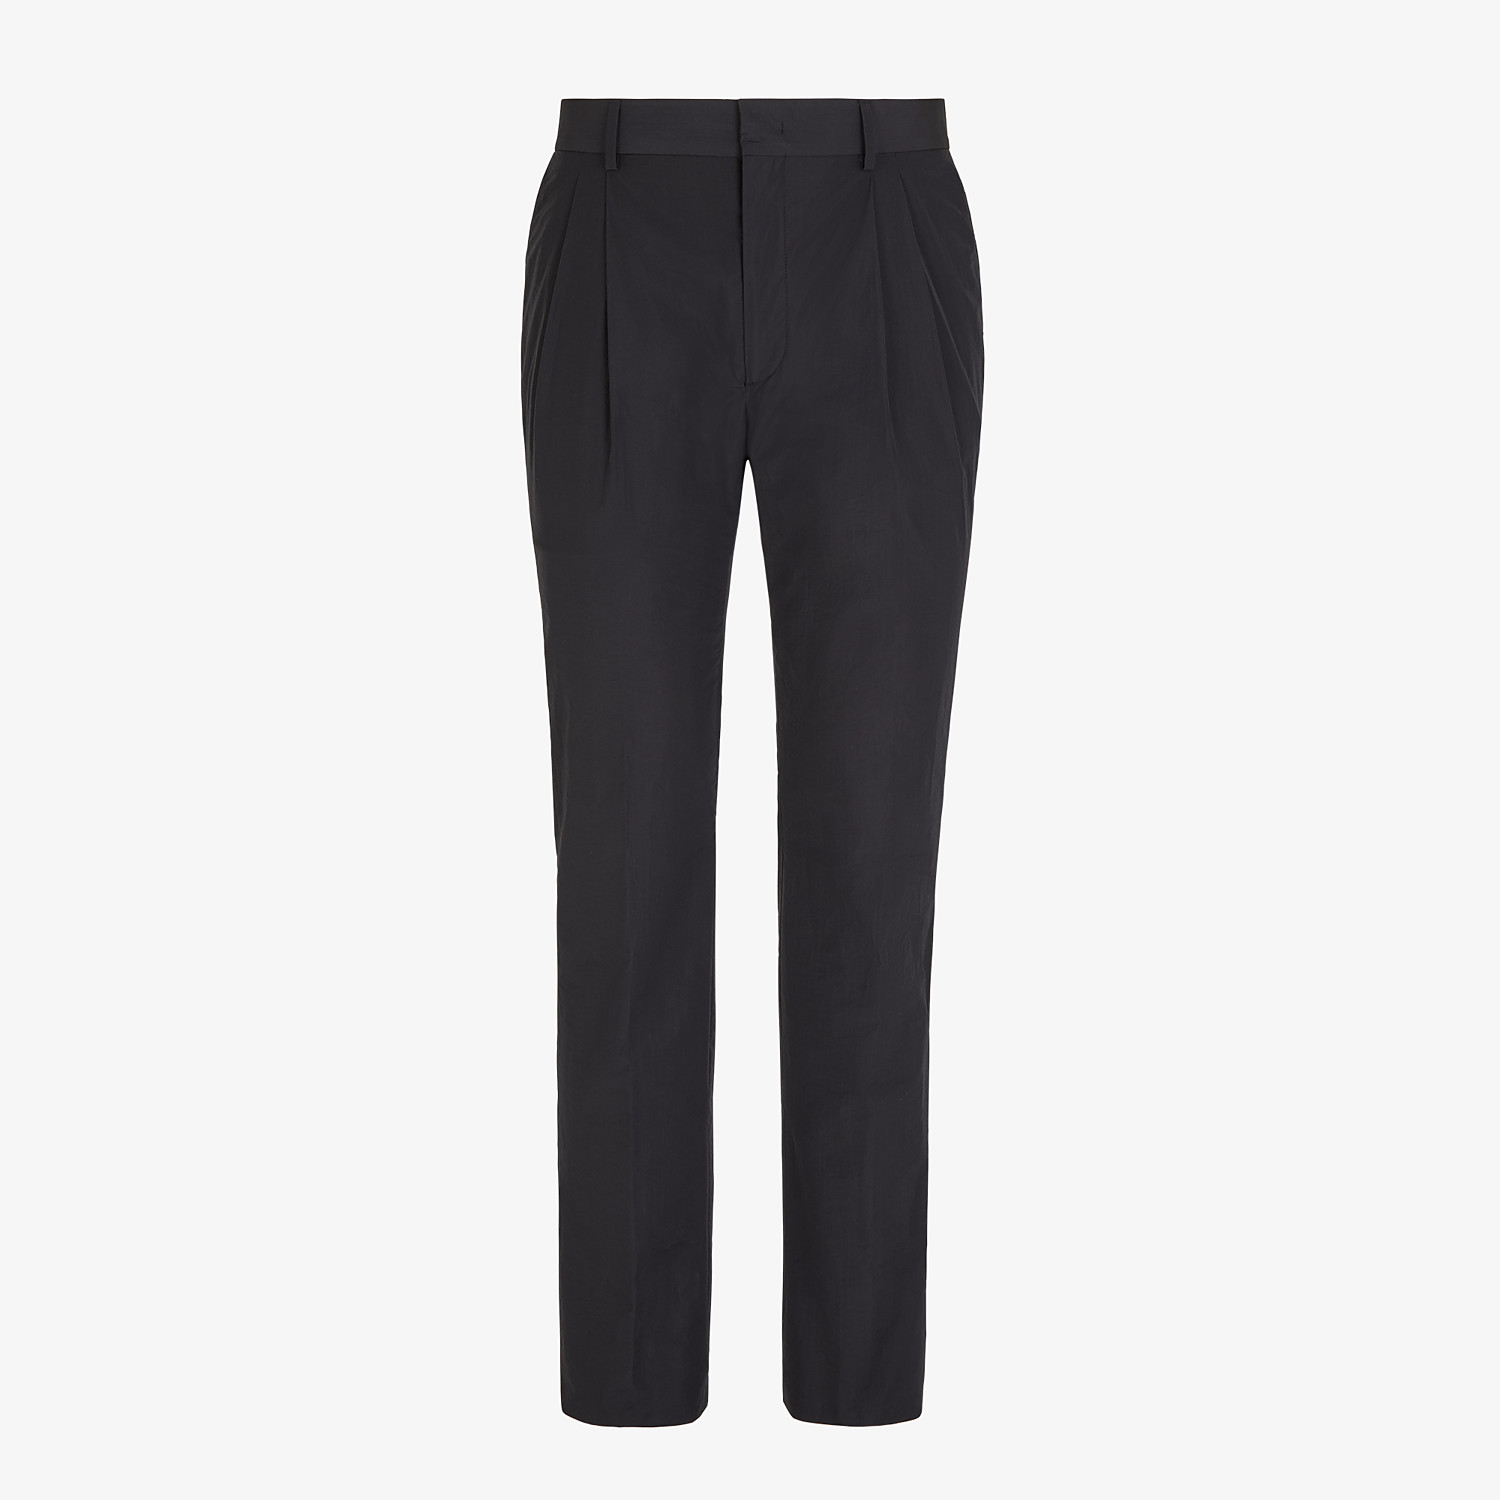 FENDI TROUSERS - Black nylon and cotton trousers - view 1 detail